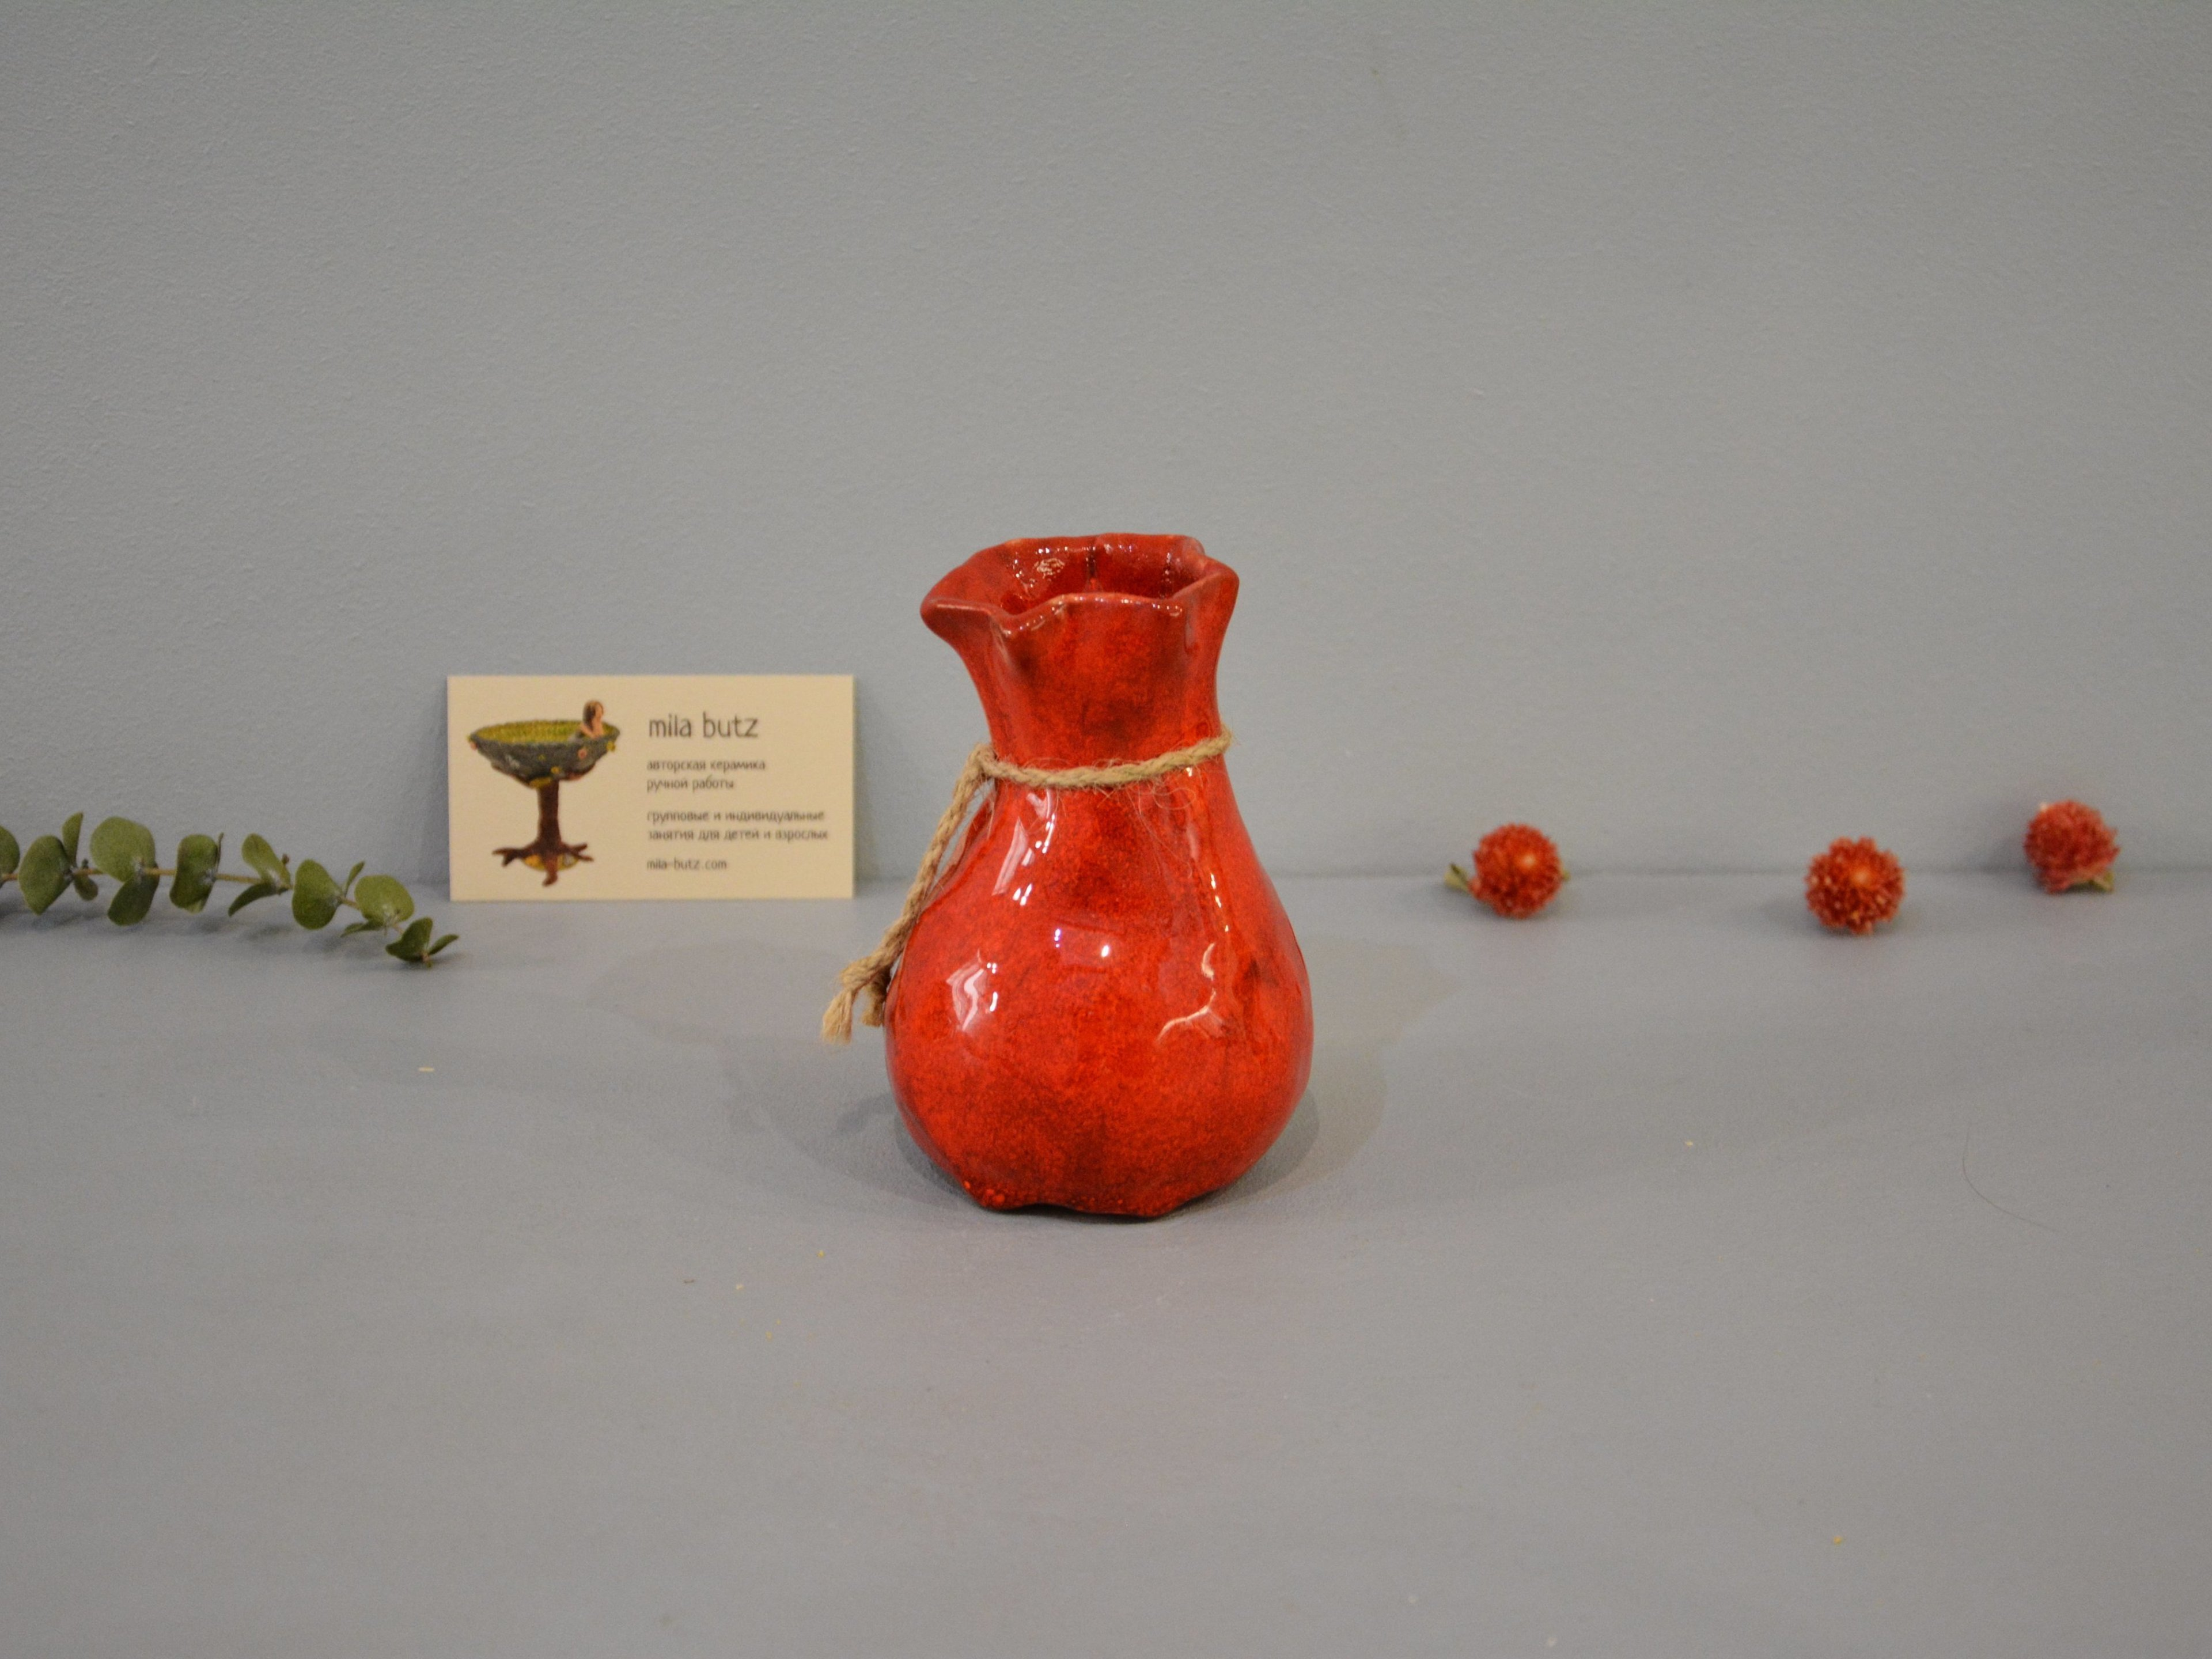 Interior vase «Red Bagful», height - 12 cm, color - red. Photo 1437-3840-2880.